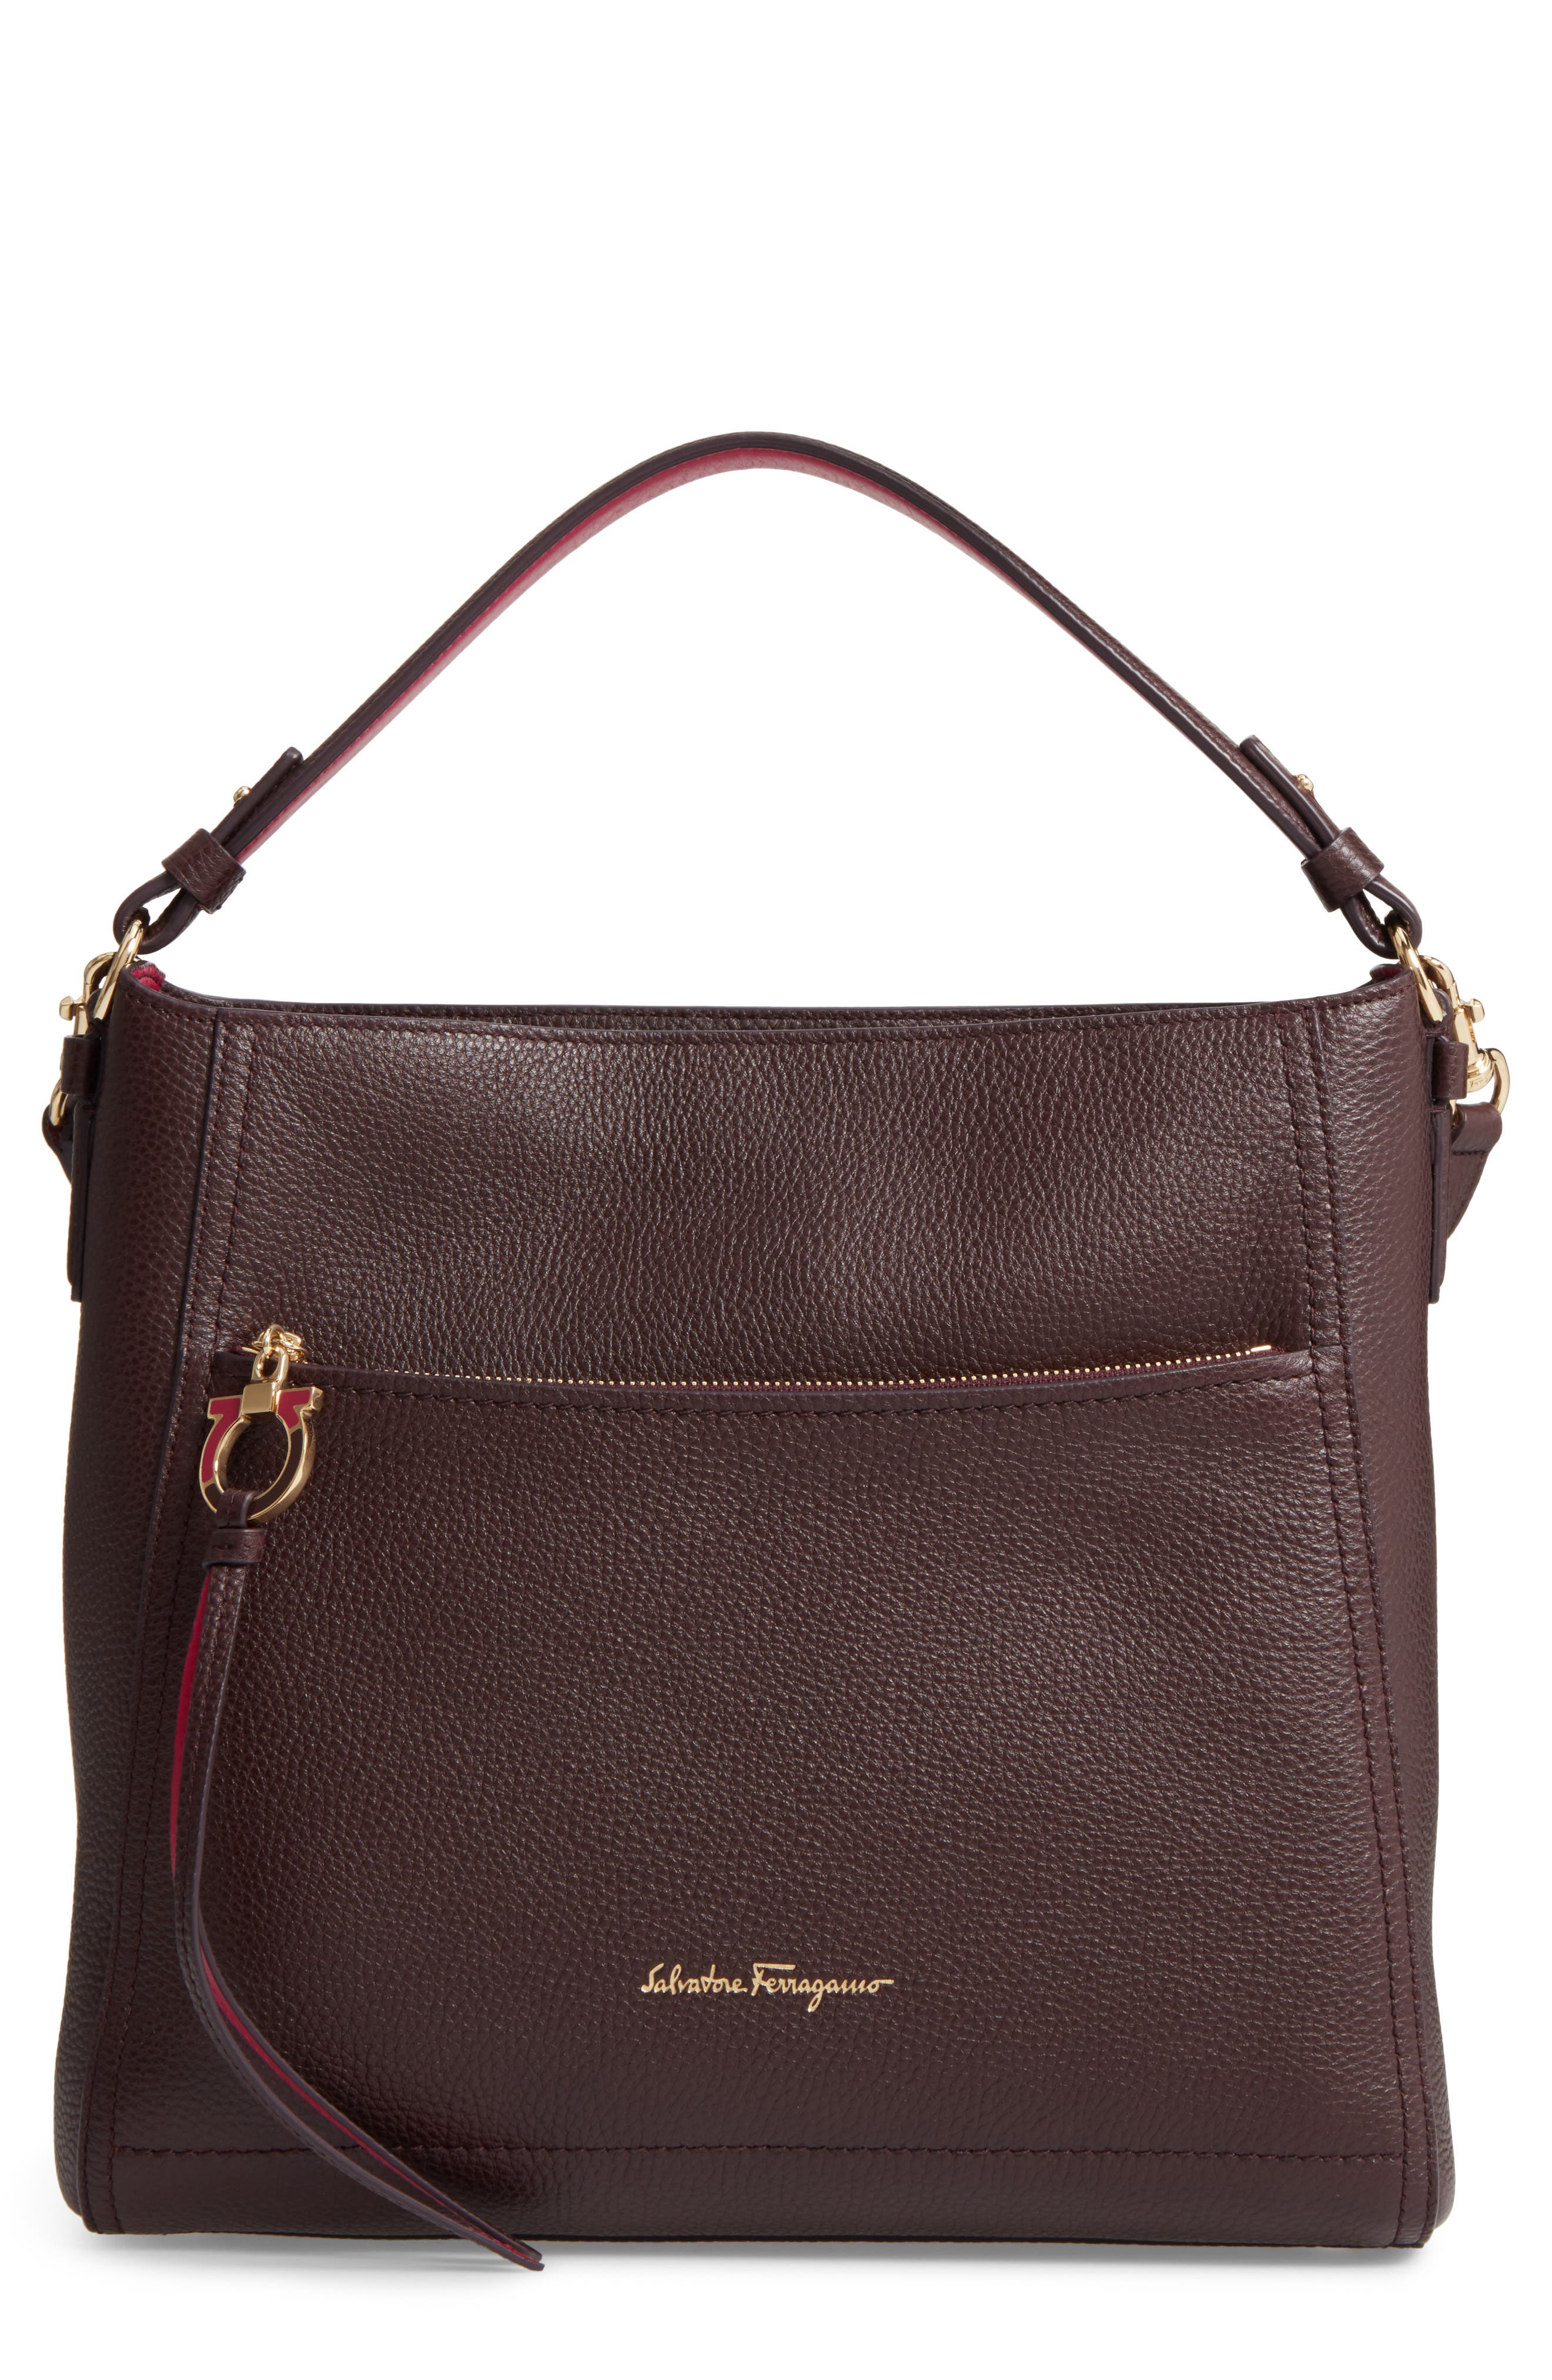 Salvatore Ferragamo Medium Ally Leather Top Handle Tote